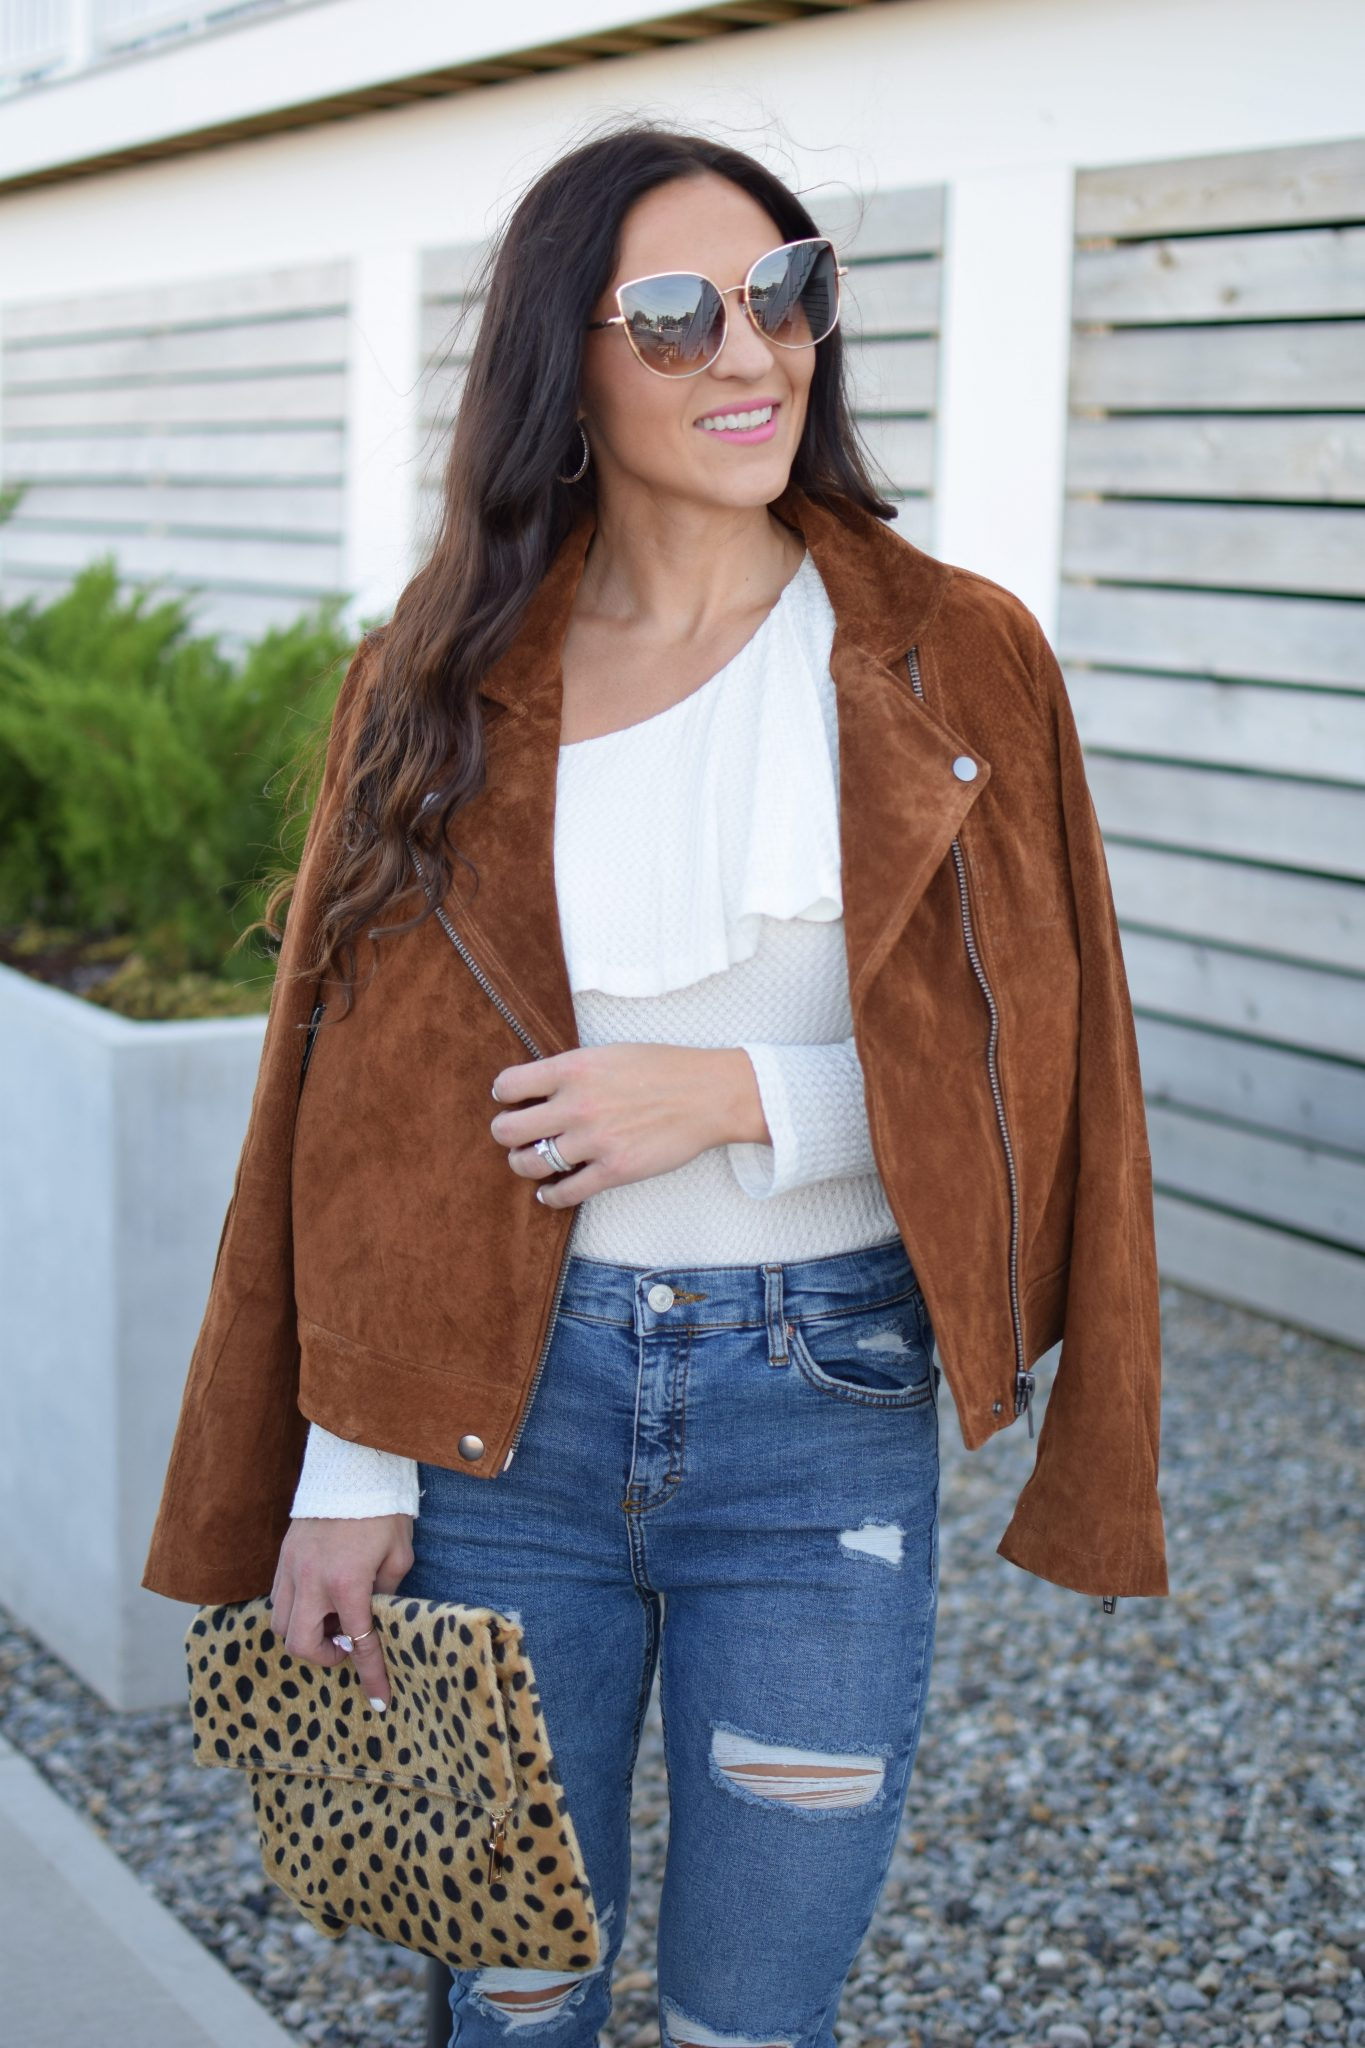 few a Top In 5 Mommy for Falland Jackets dupesFit Heels MqVSzpUG